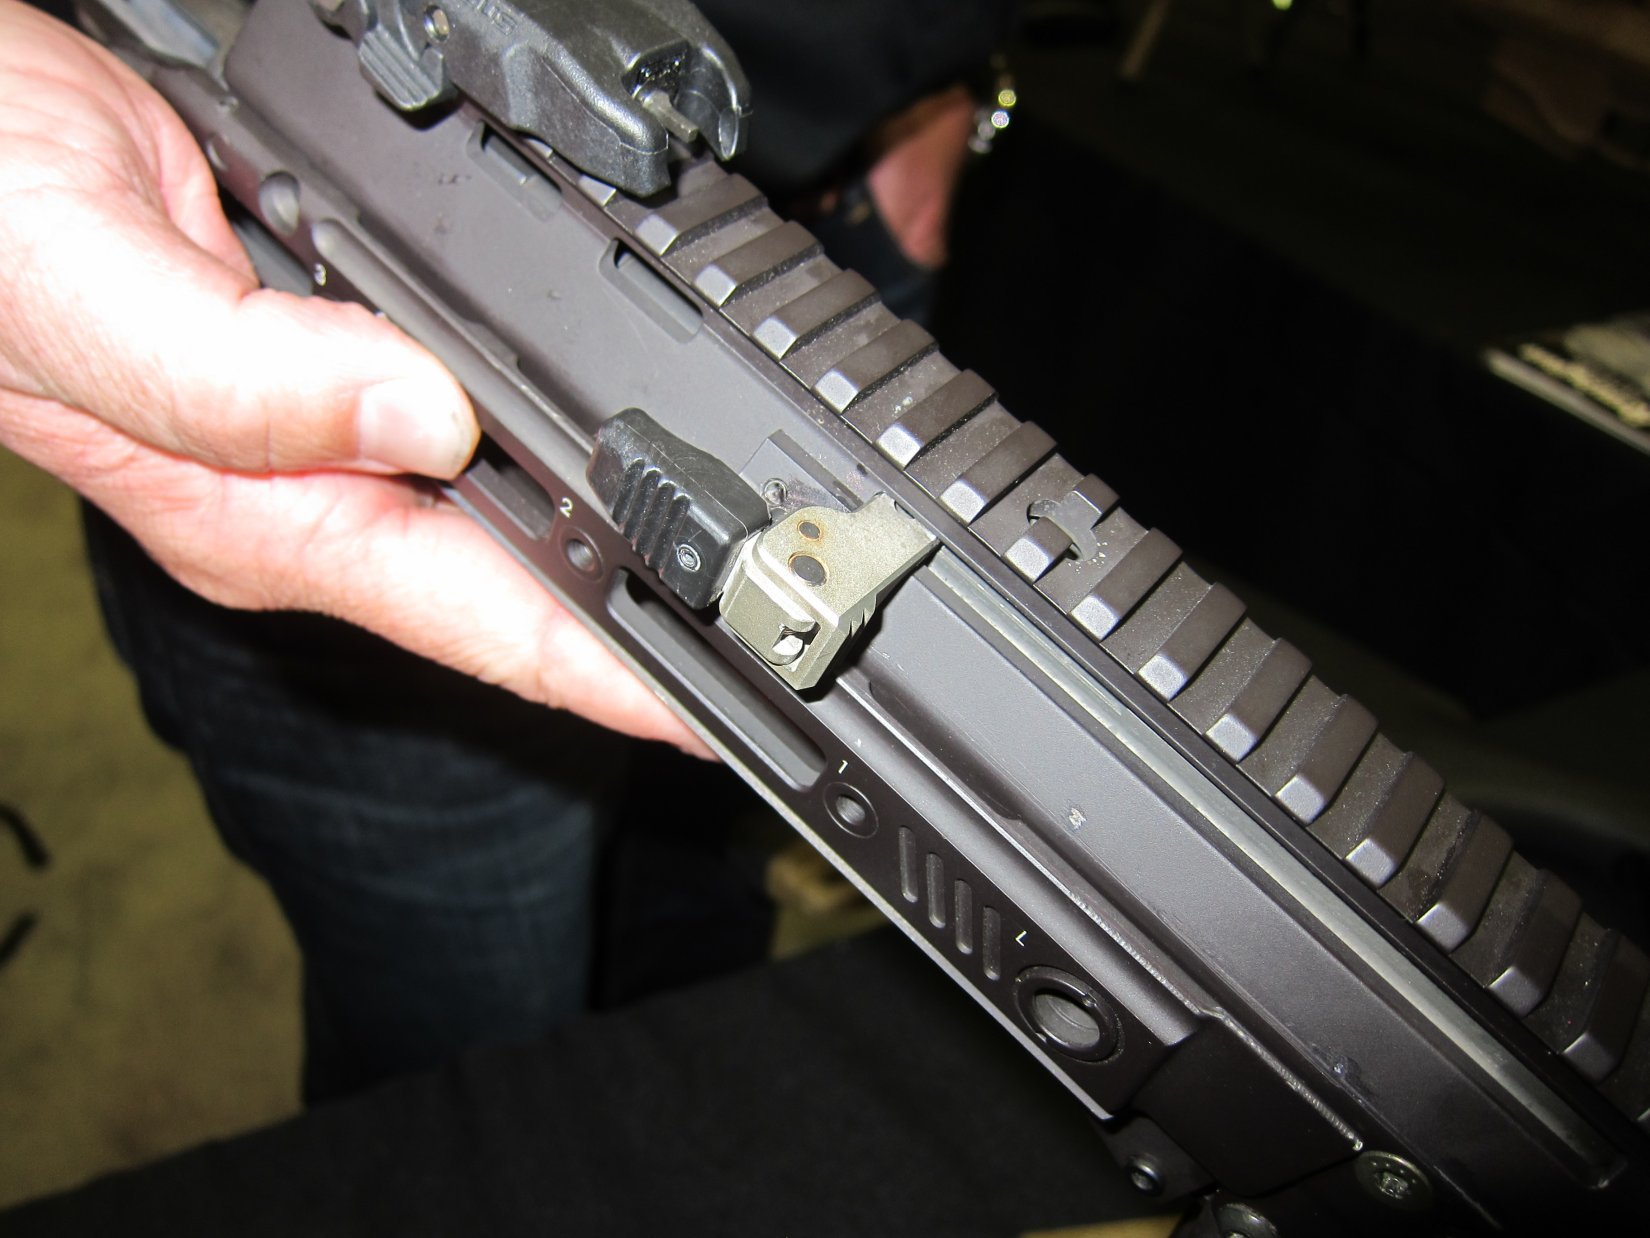 Remington ACR PDW SBR Adaptive Combat Rifle Personal Defense Weapon Short Barreled Rifle Robby Johnson NDIA Joint Armaments 2012 DefenseReview.com DR 5 Remington ACR PDW SBR (Adaptive Combat Rifle Personal Defense Weapon Short Barreled Rifle) and Remington Individual Carbine (IC) Candidate: Remington Defense Assault Rifles/Carbines/PDWs at NDIA Joint Armaments Conference 2012 (Video!)